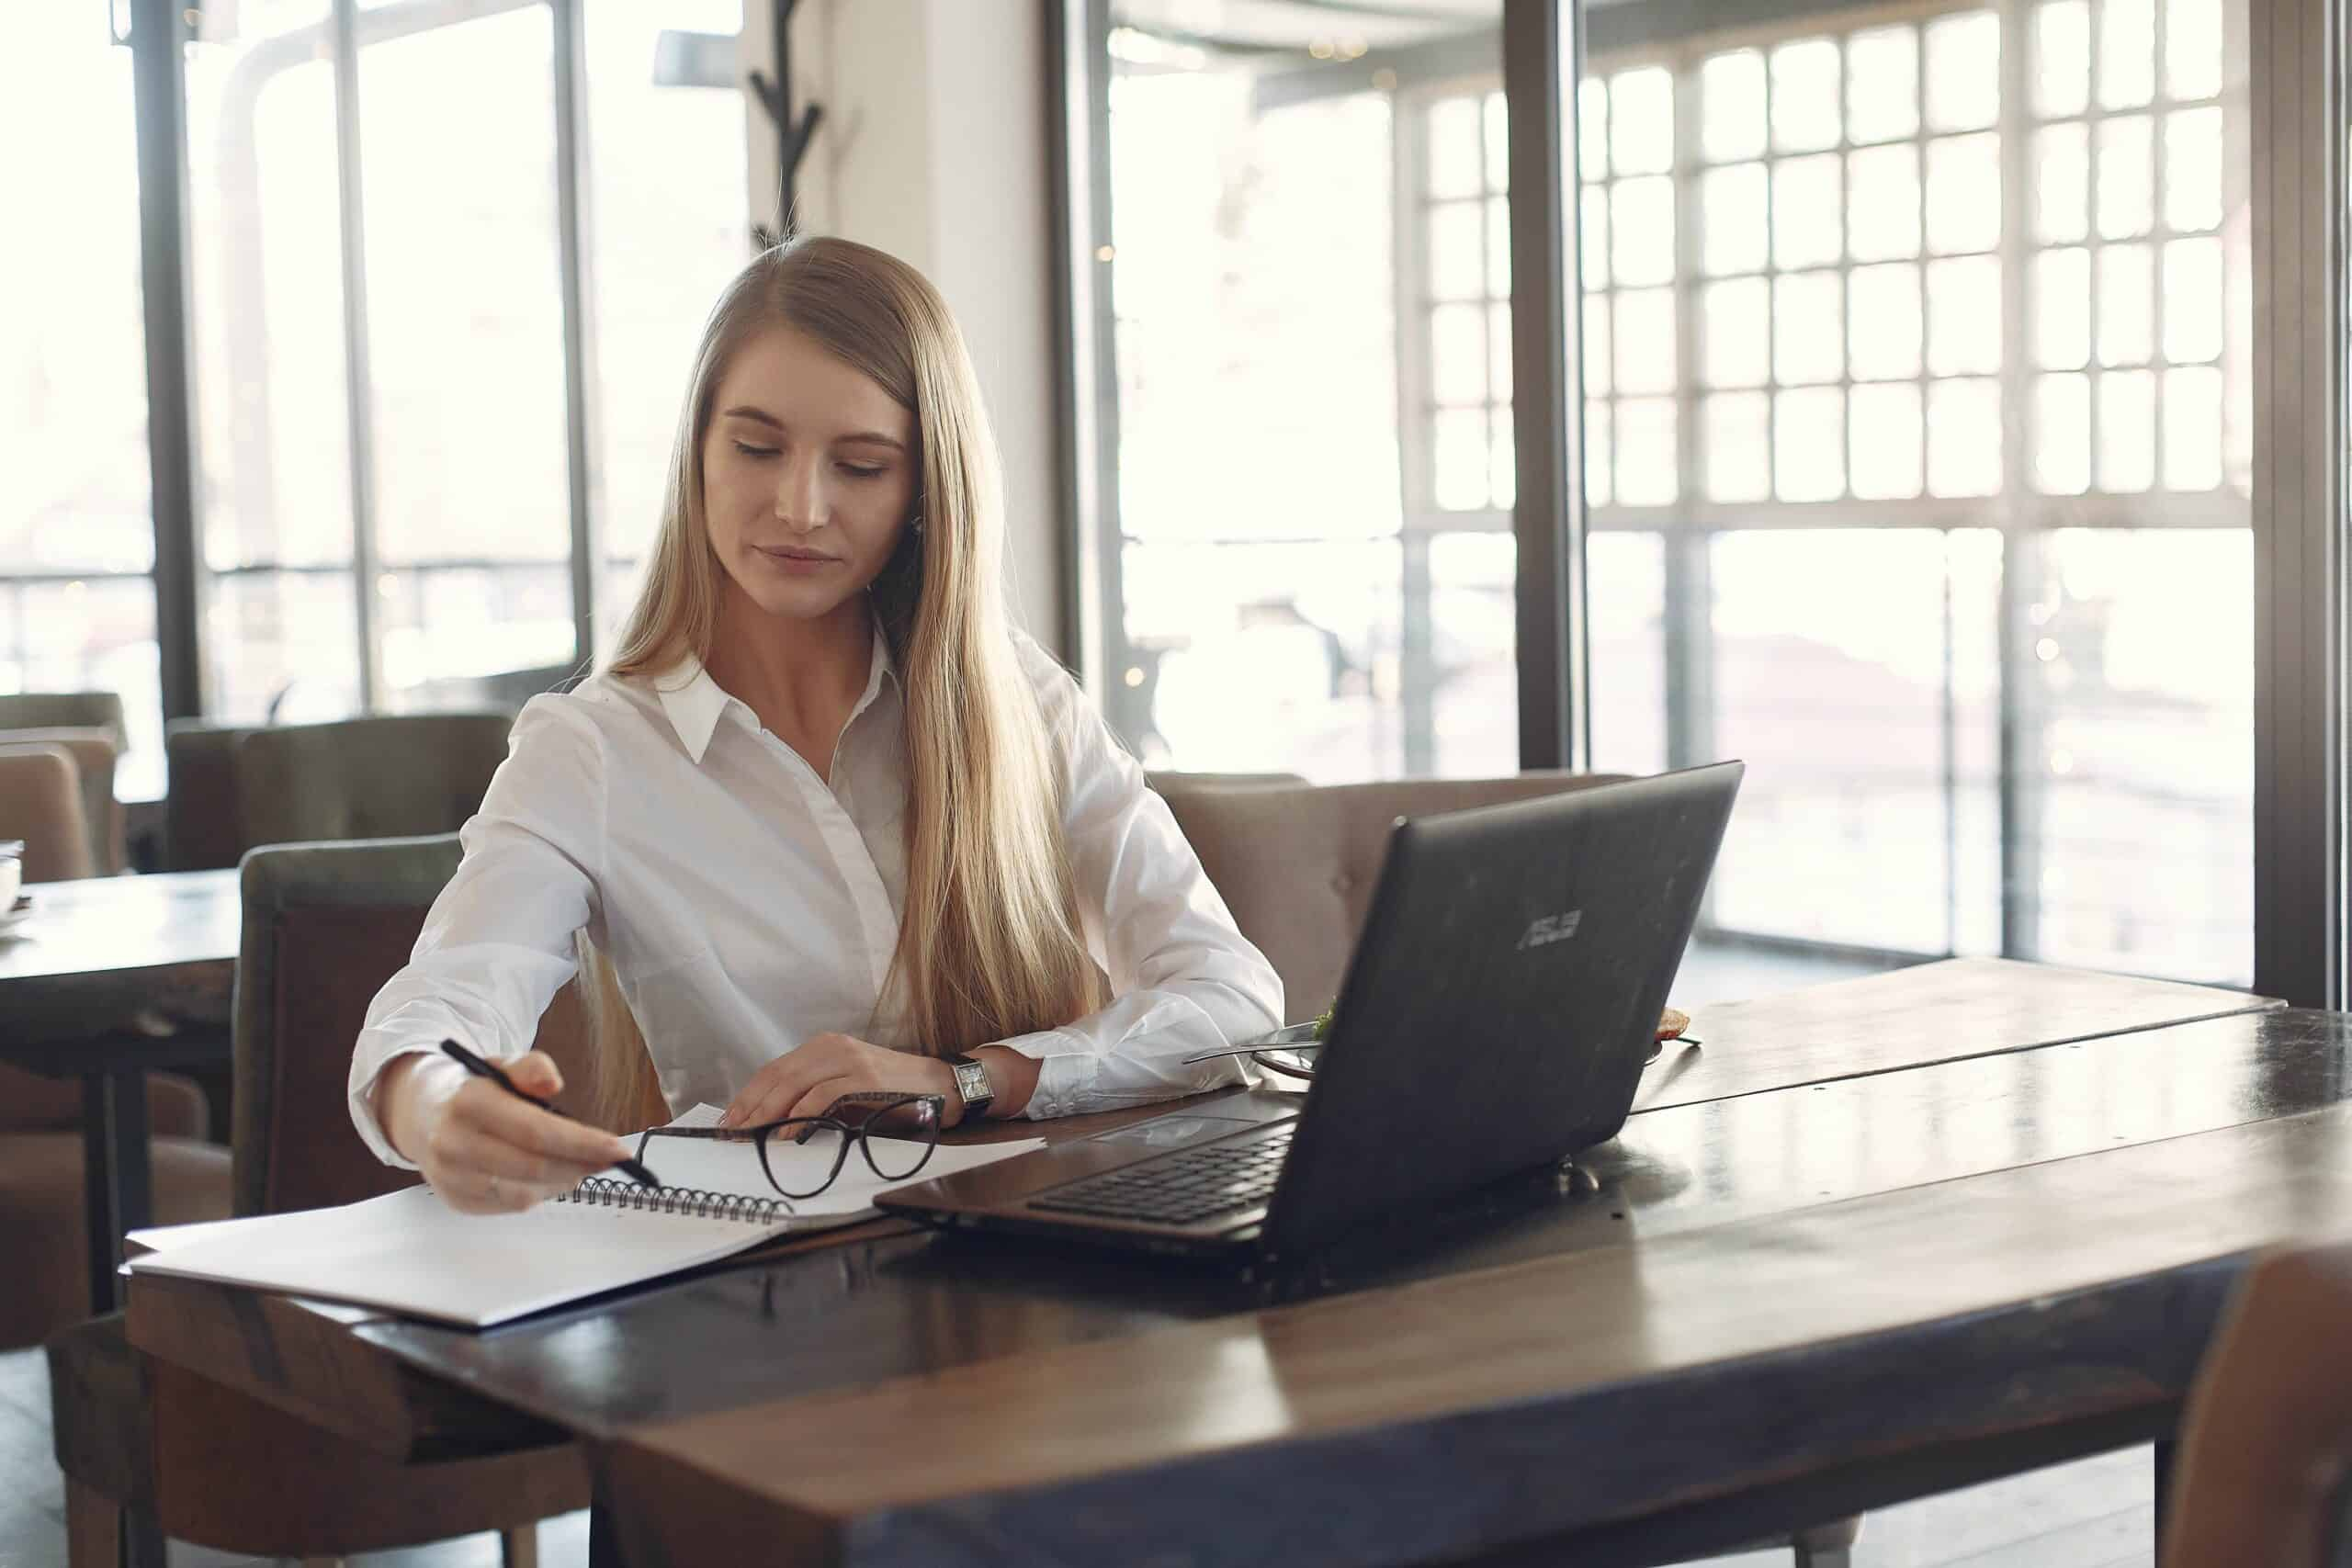 Business woman sitting at desk with laptop and writing on notepad